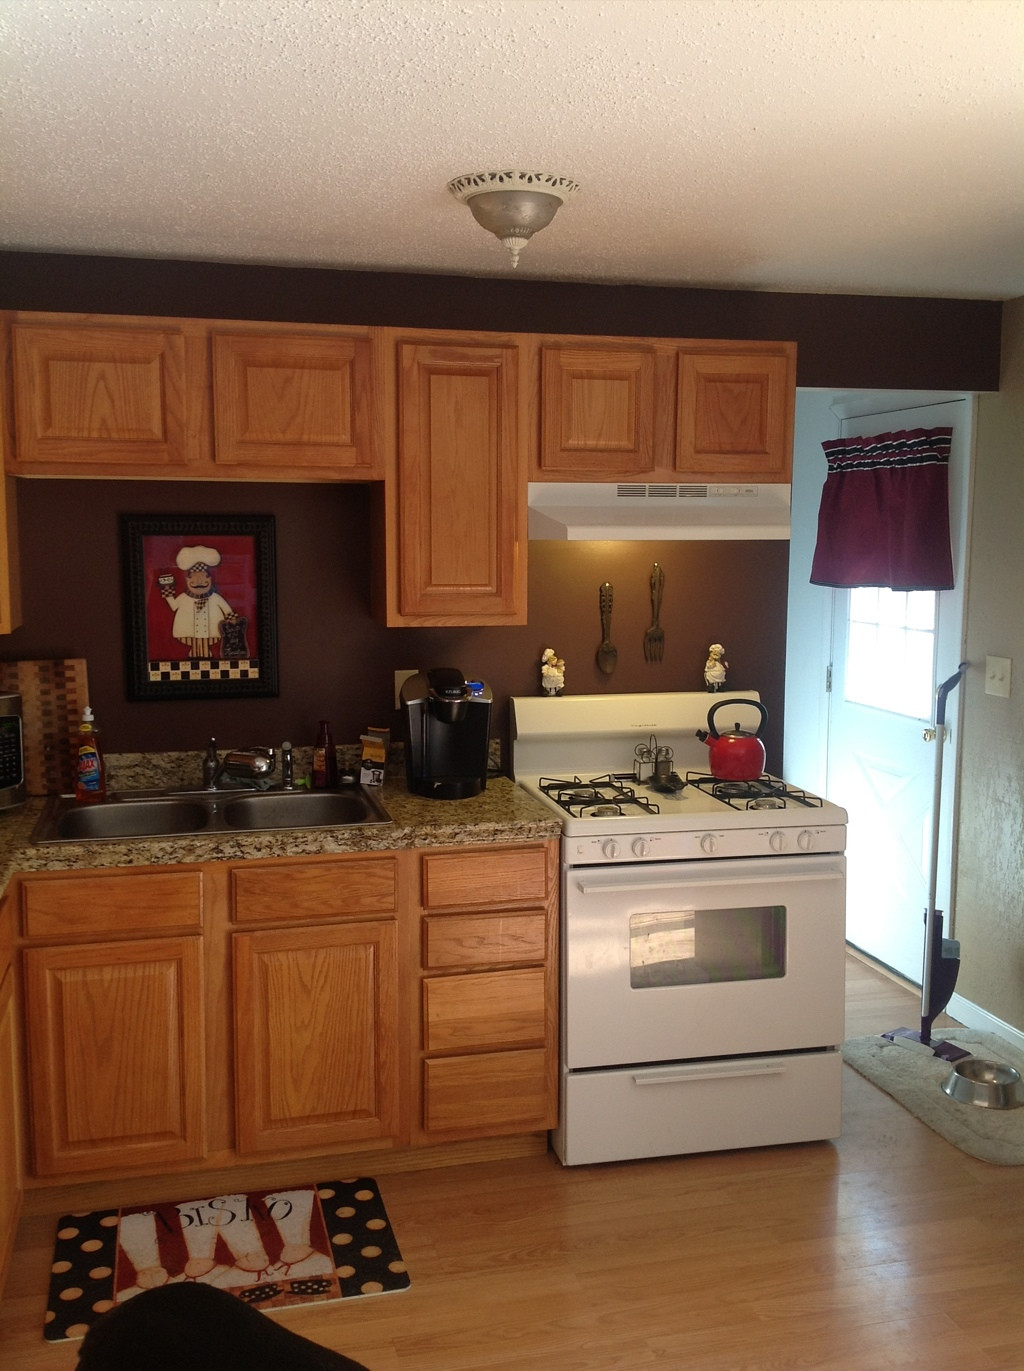 Best ideas about Kitchen Decoration Image . Save or Pin Kitchen Decor Chef Theme Now.